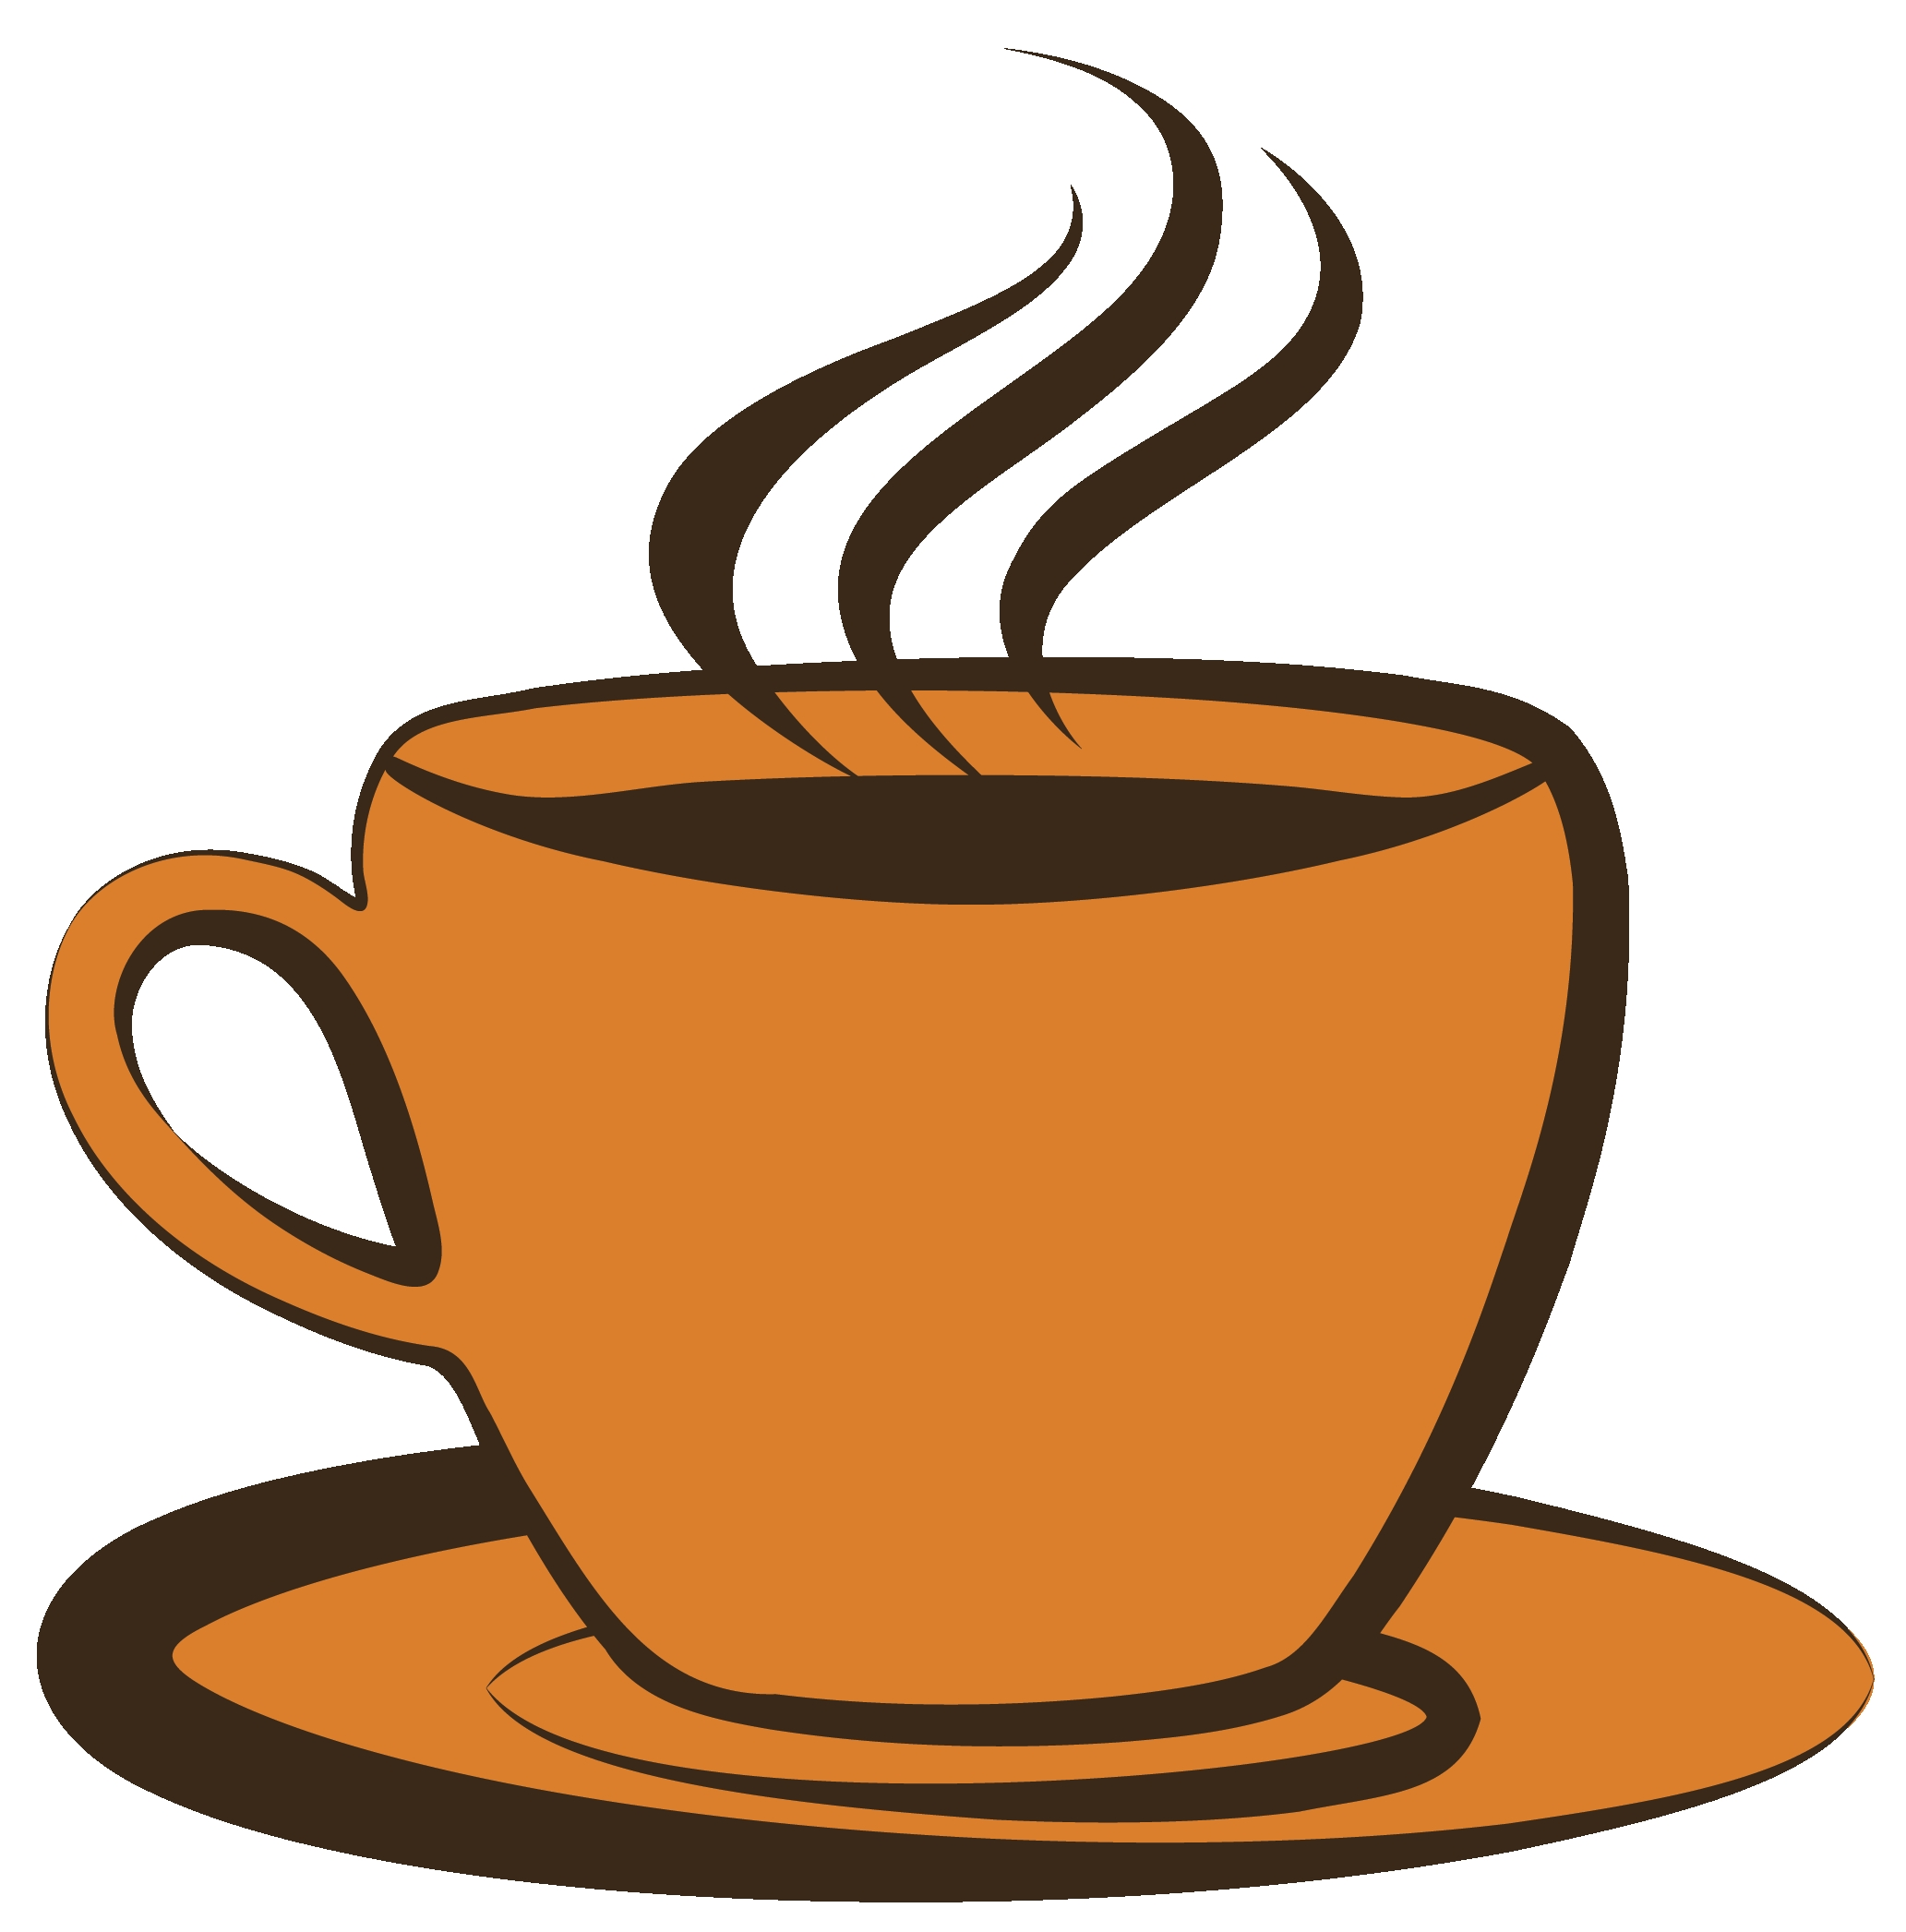 Coffee Mug Cliparts | Free download on ClipArtMag